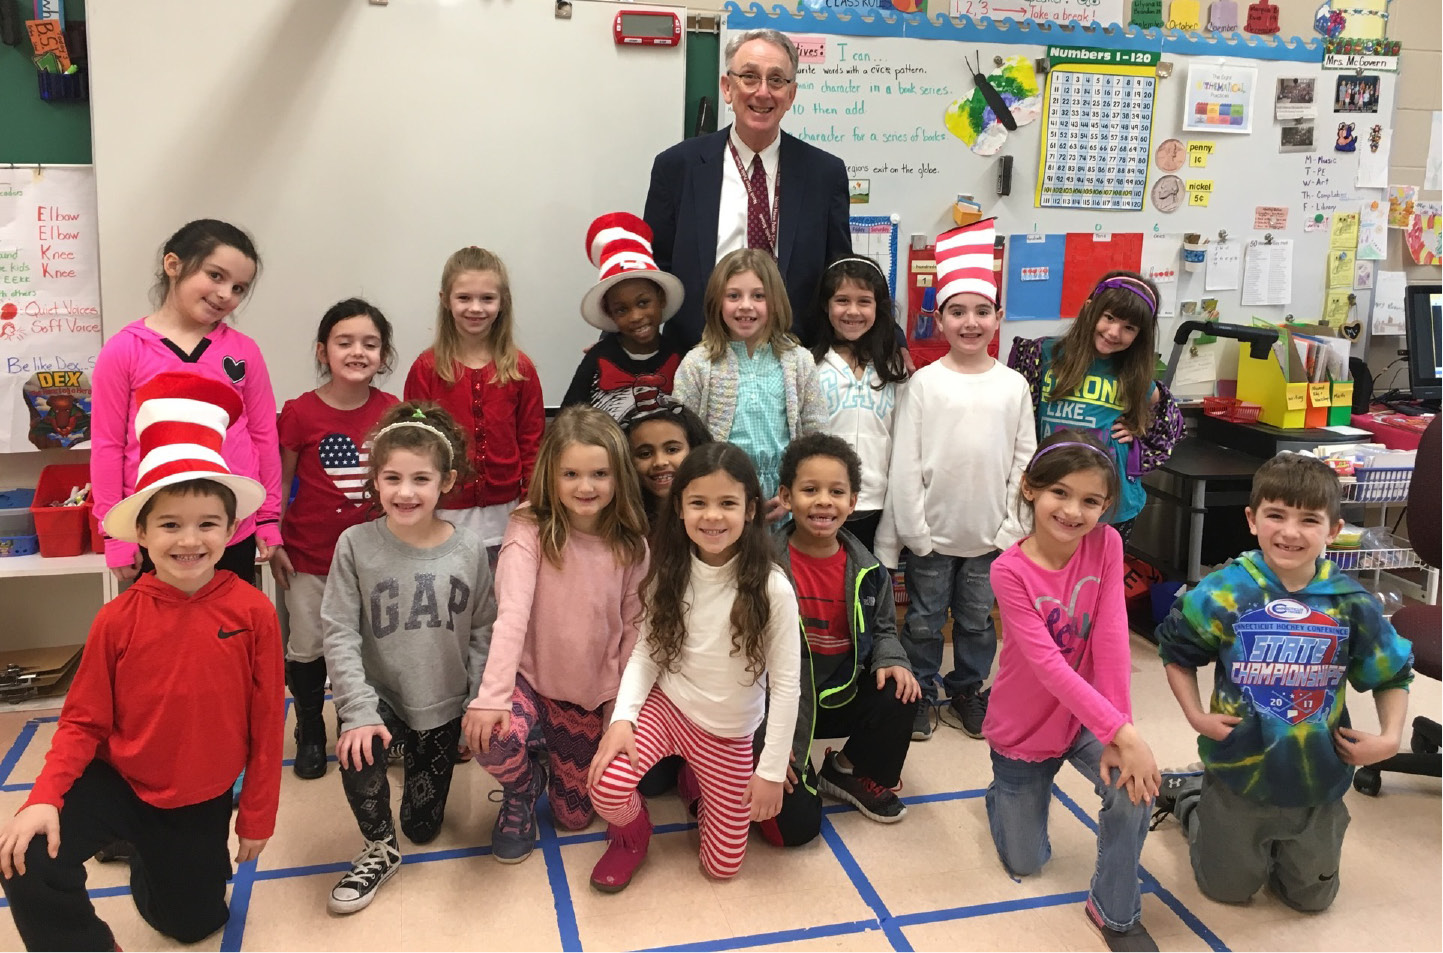 Students at Clintonville Elementary School welcomed 16 guest readers from the community on Read Across America Day, March 1. The program was created 20 years ago by the National Education Association and was developed to motivate children to read. It also marks the birthday of Theodor Seuss Geisel (Dr. Seuss).